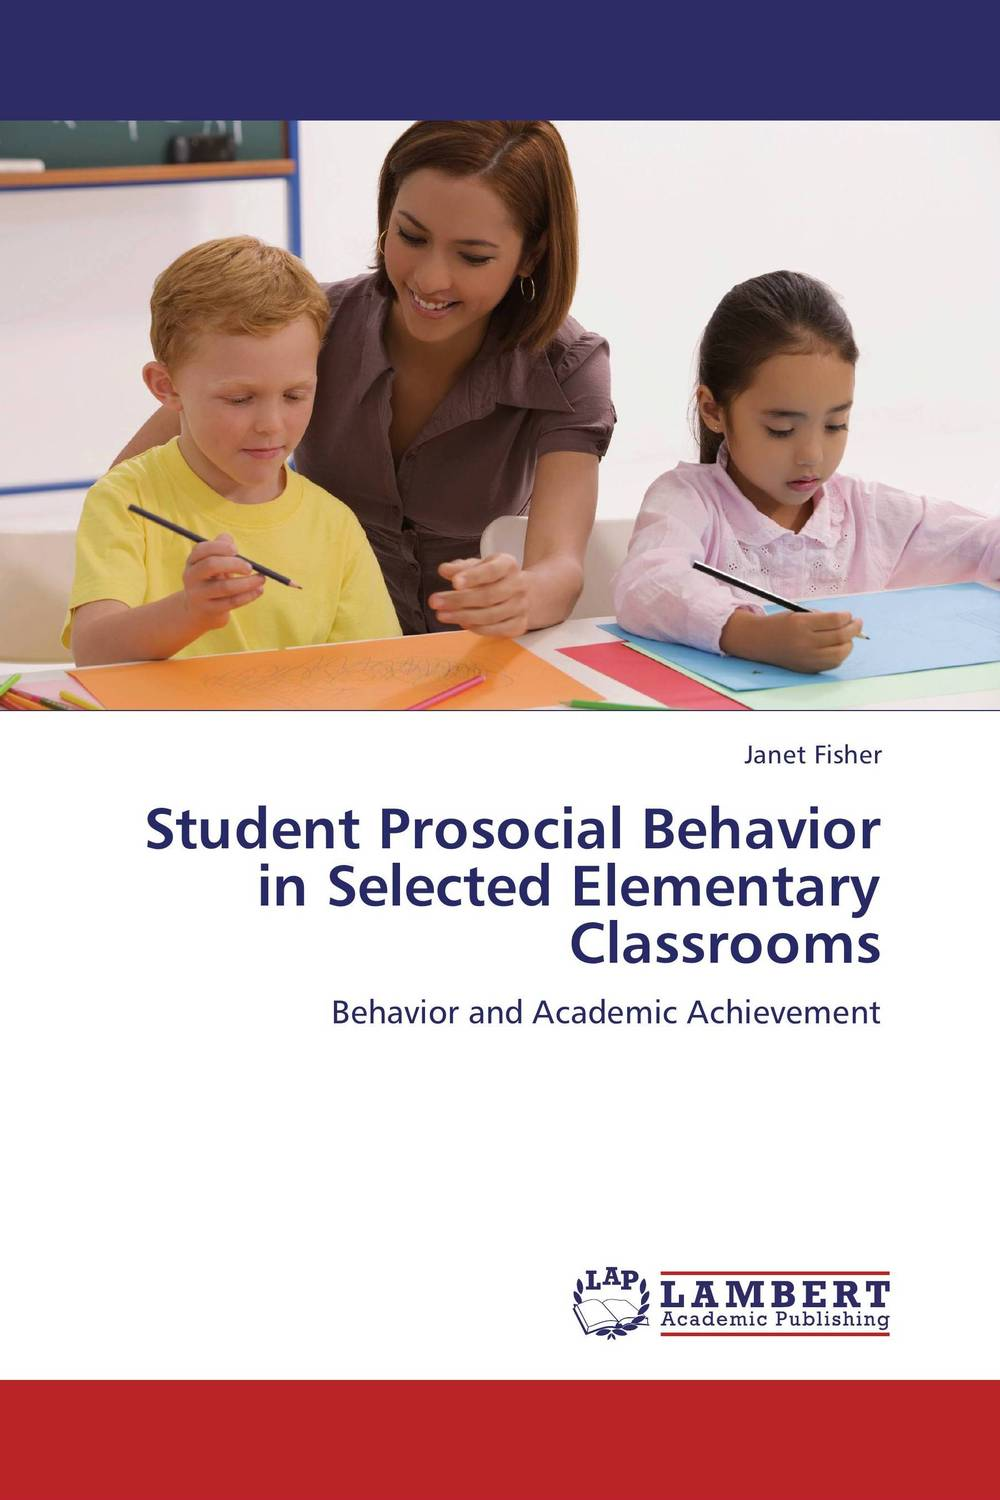 Student Prosocial Behavior in Selected Elementary Classrooms